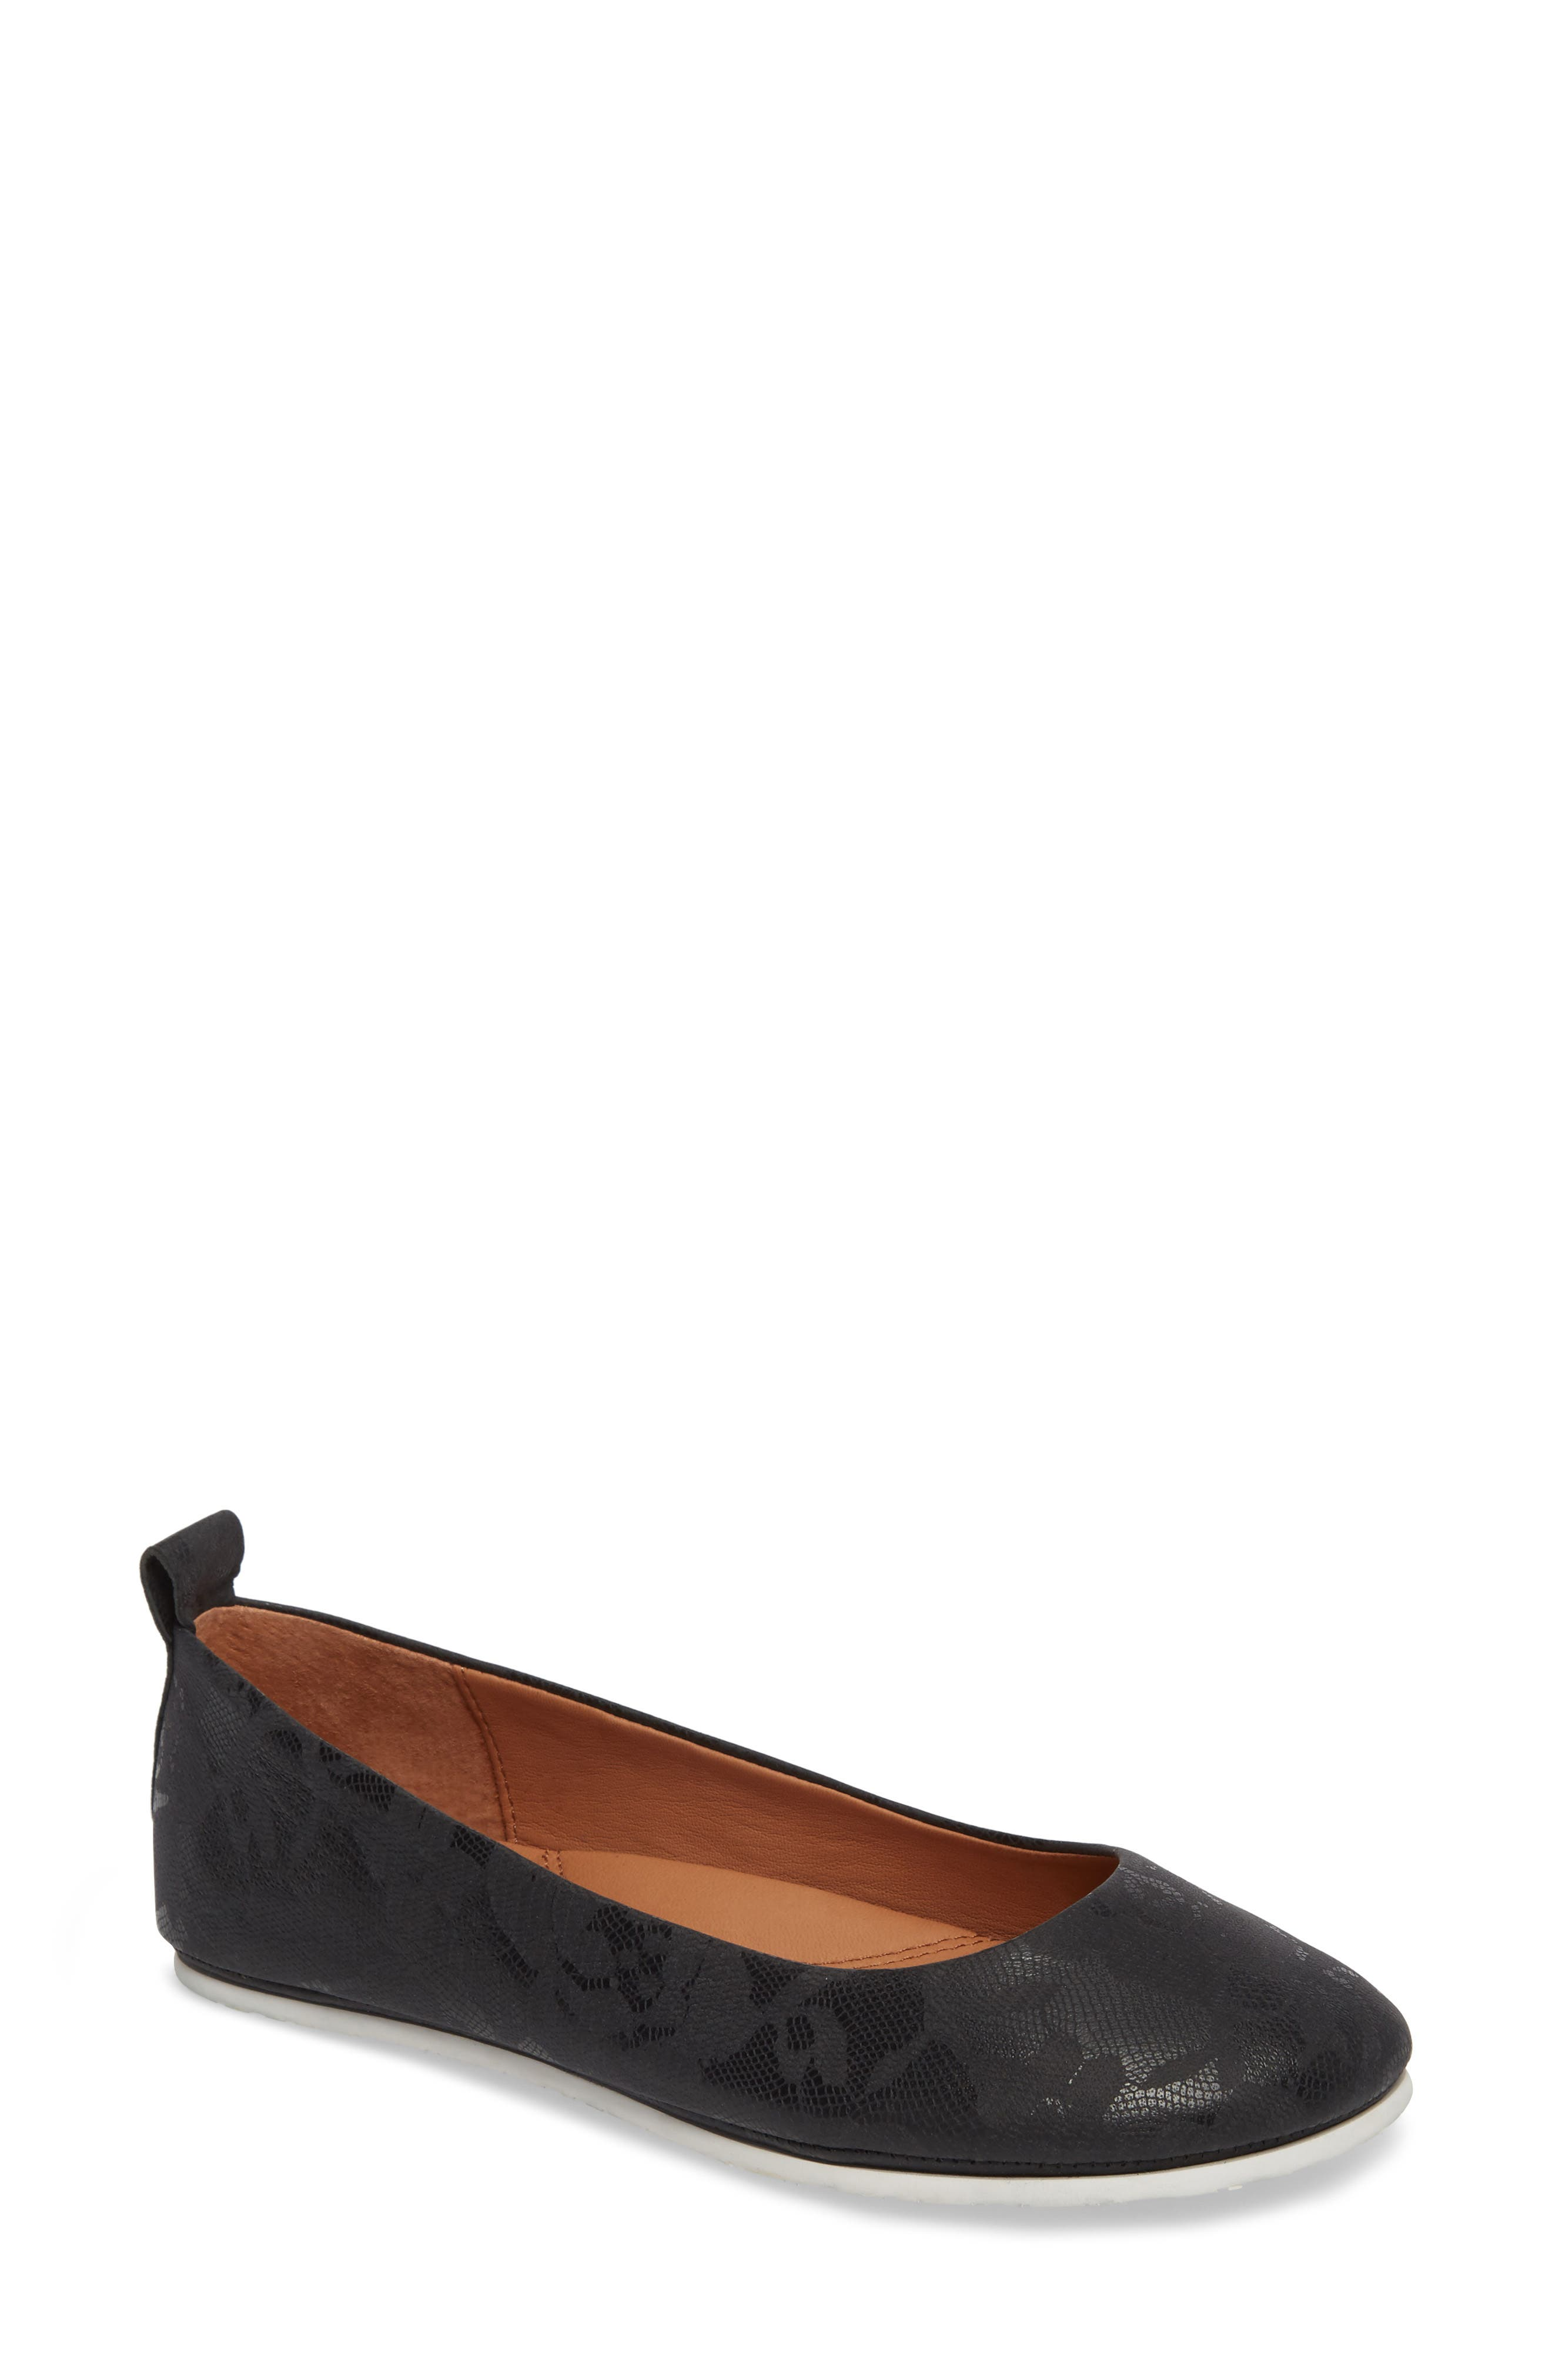 GENTLE SOULS BY KENNETH COLE, Dana Flat, Main thumbnail 1, color, BLACK/ BLACK LEATHER